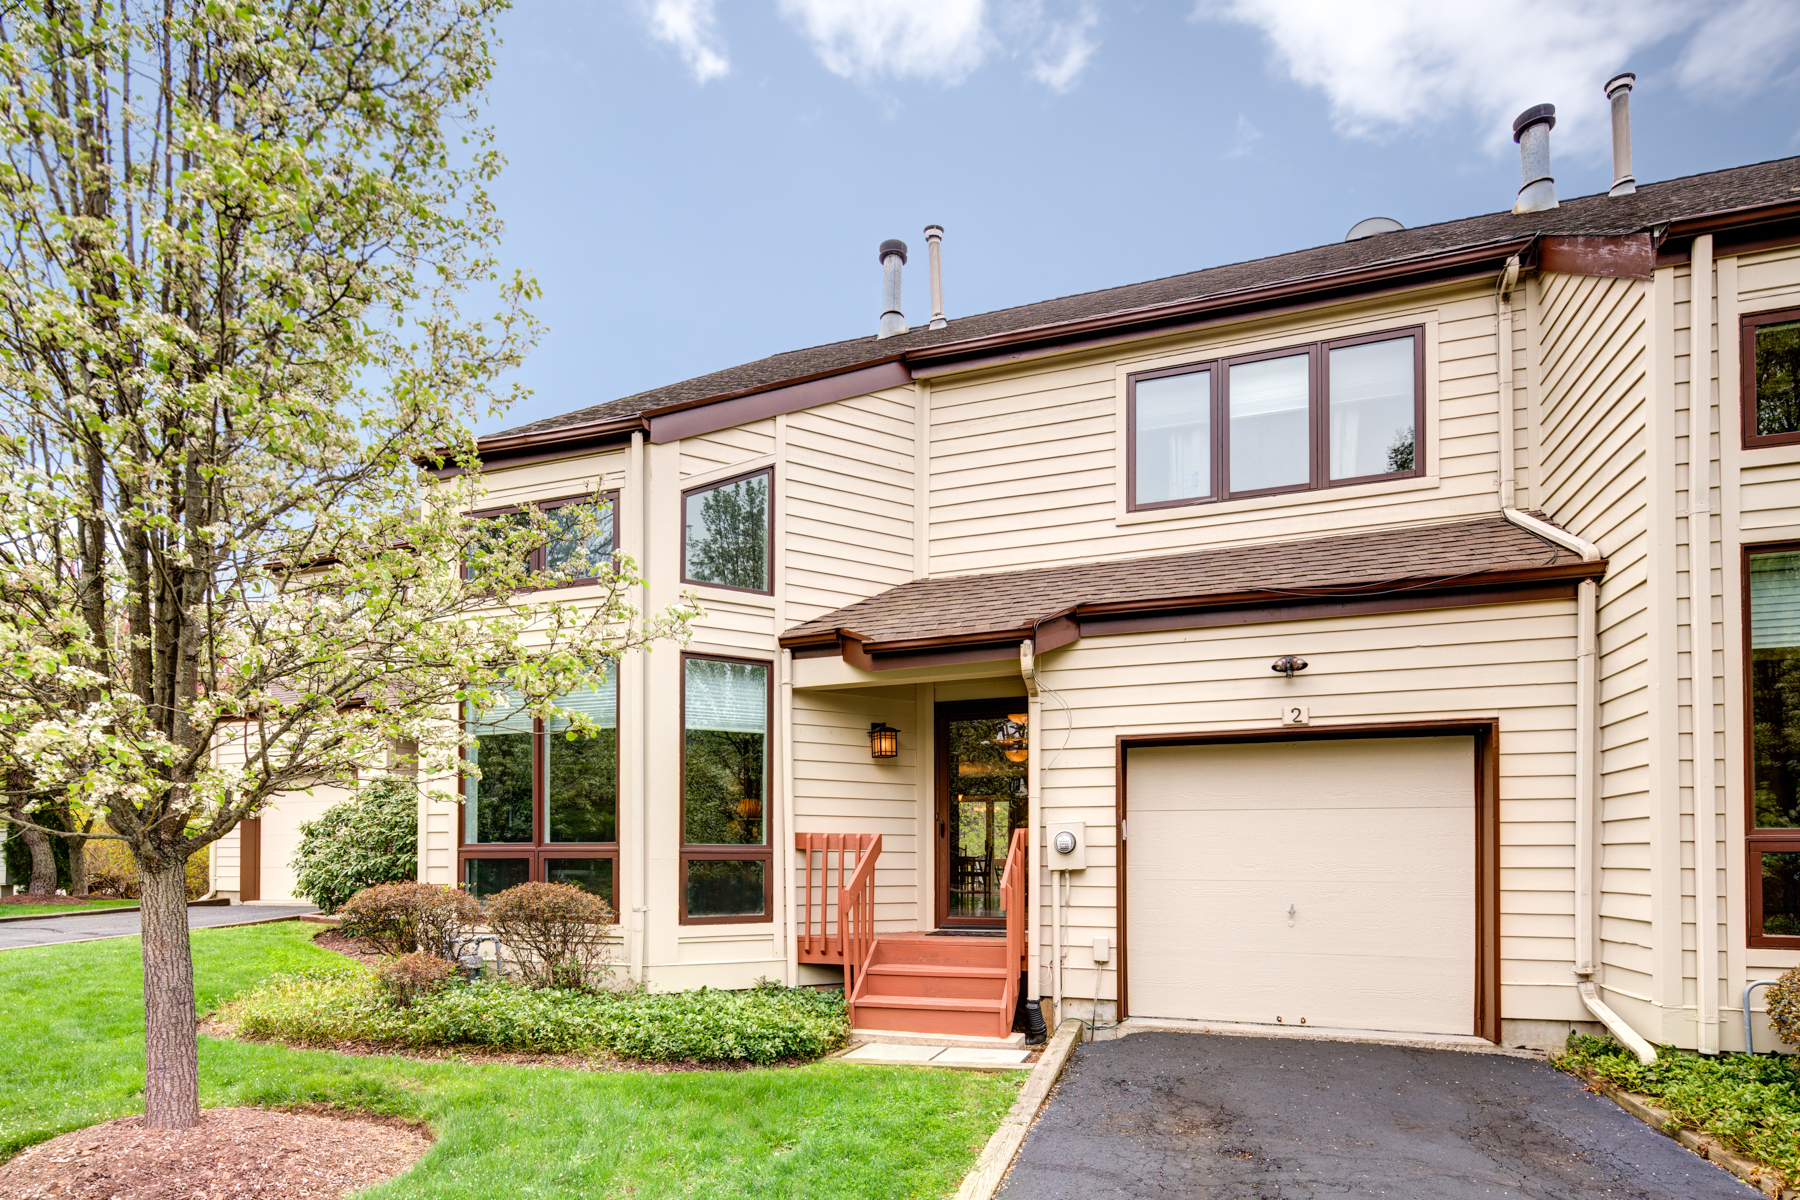 Townhouse for Sale at Wonderful Townhome 2 Franklin Court Bernardsville, New Jersey, 07924 United States